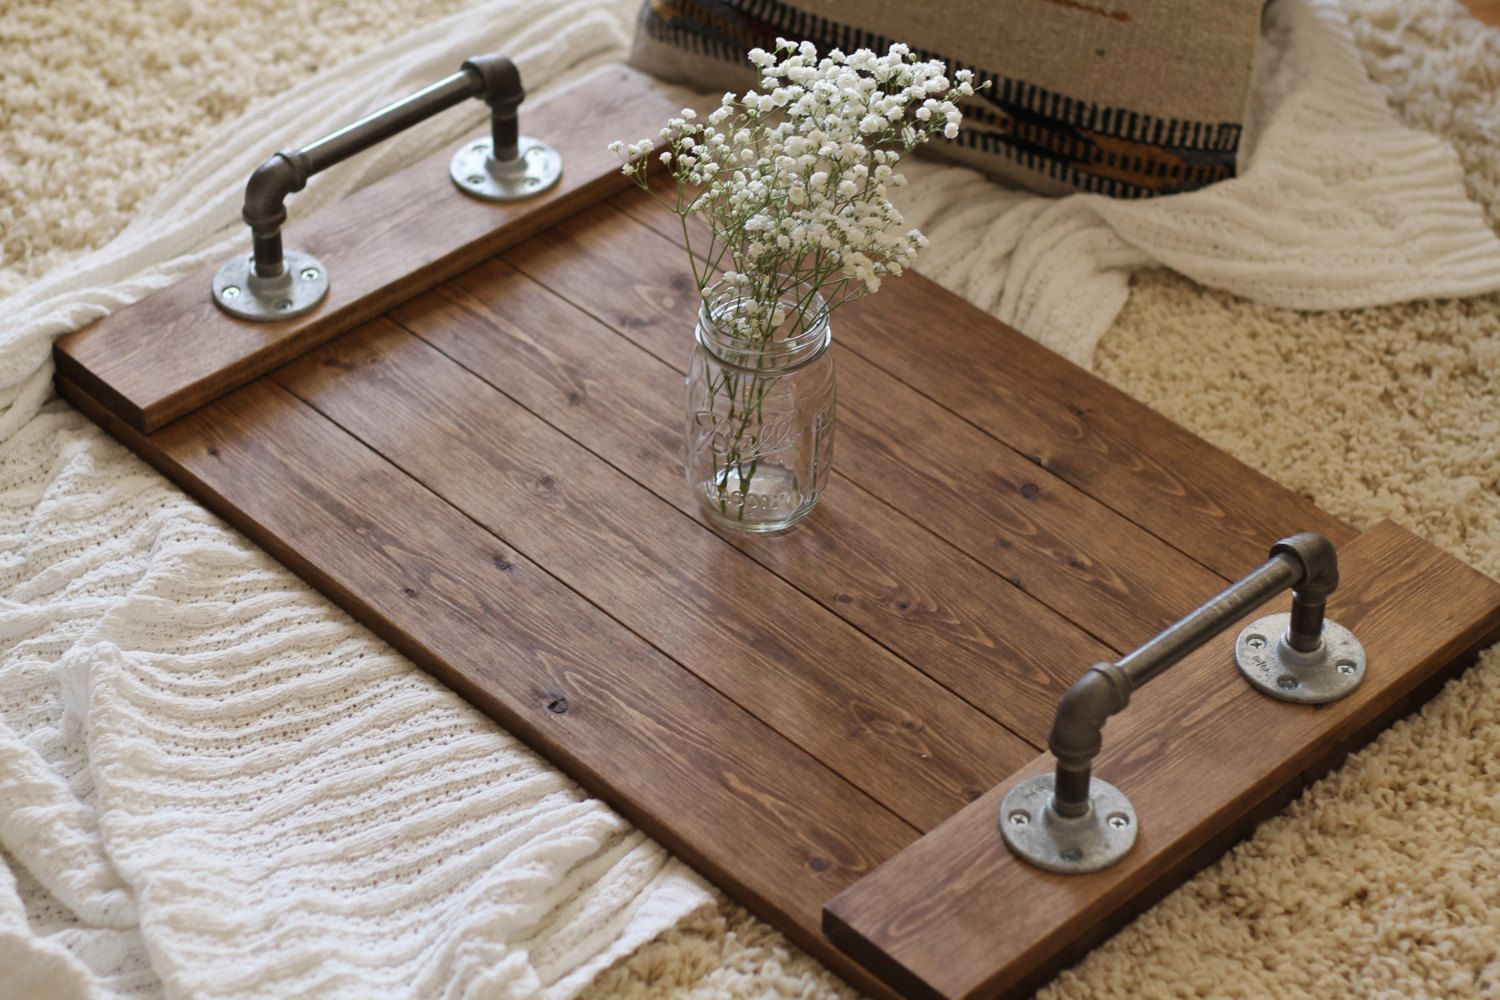 Wooden Tray Decor Delectable Rustic Industrial Tray Wooden Tray Ottomandunnrusticdesigns Design Decoration